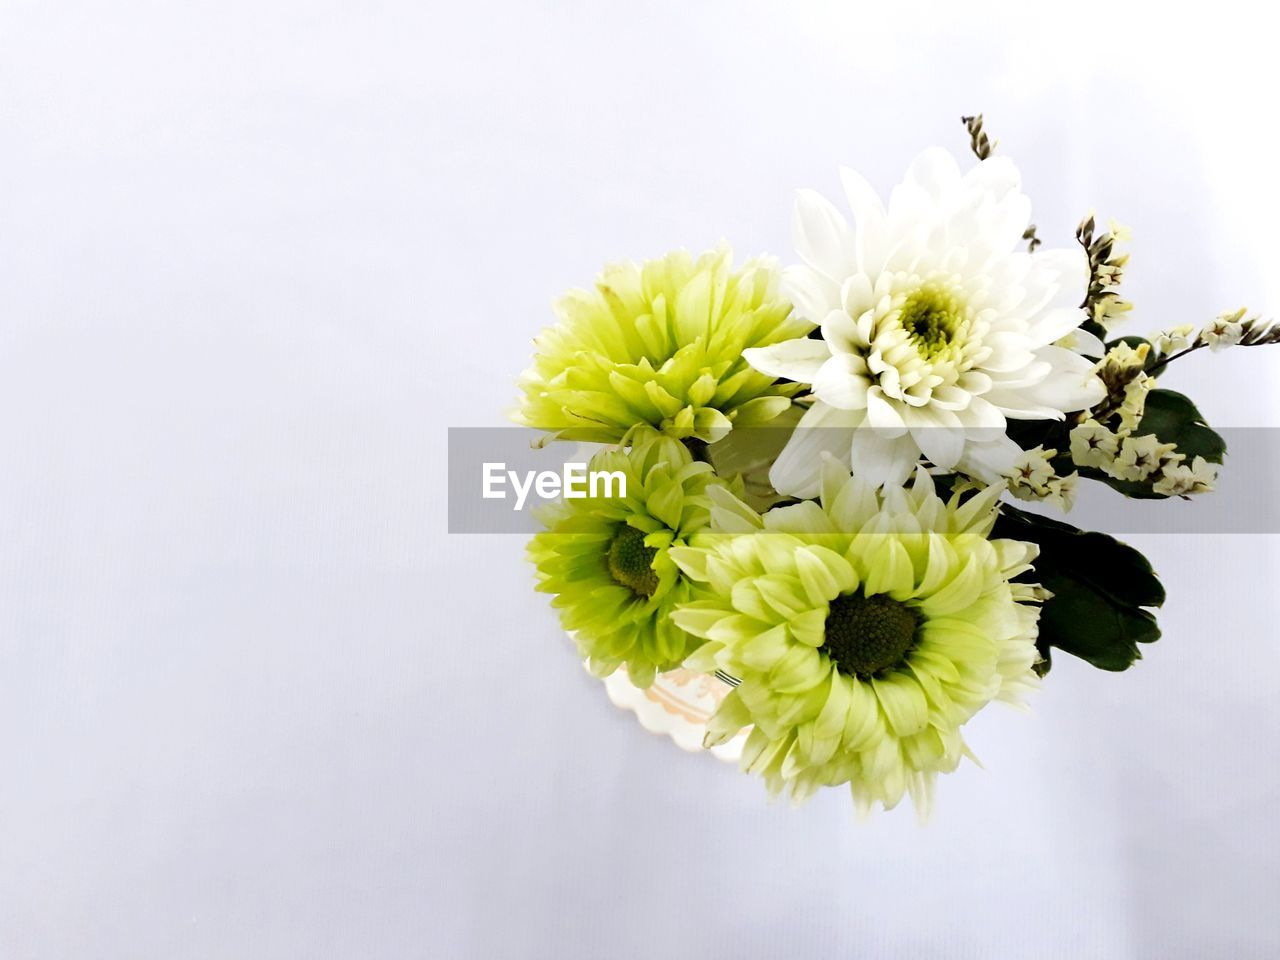 flower, flowering plant, freshness, vulnerability, beauty in nature, fragility, plant, petal, close-up, studio shot, white color, growth, no people, flower head, copy space, white background, inflorescence, nature, indoors, yellow, pollination